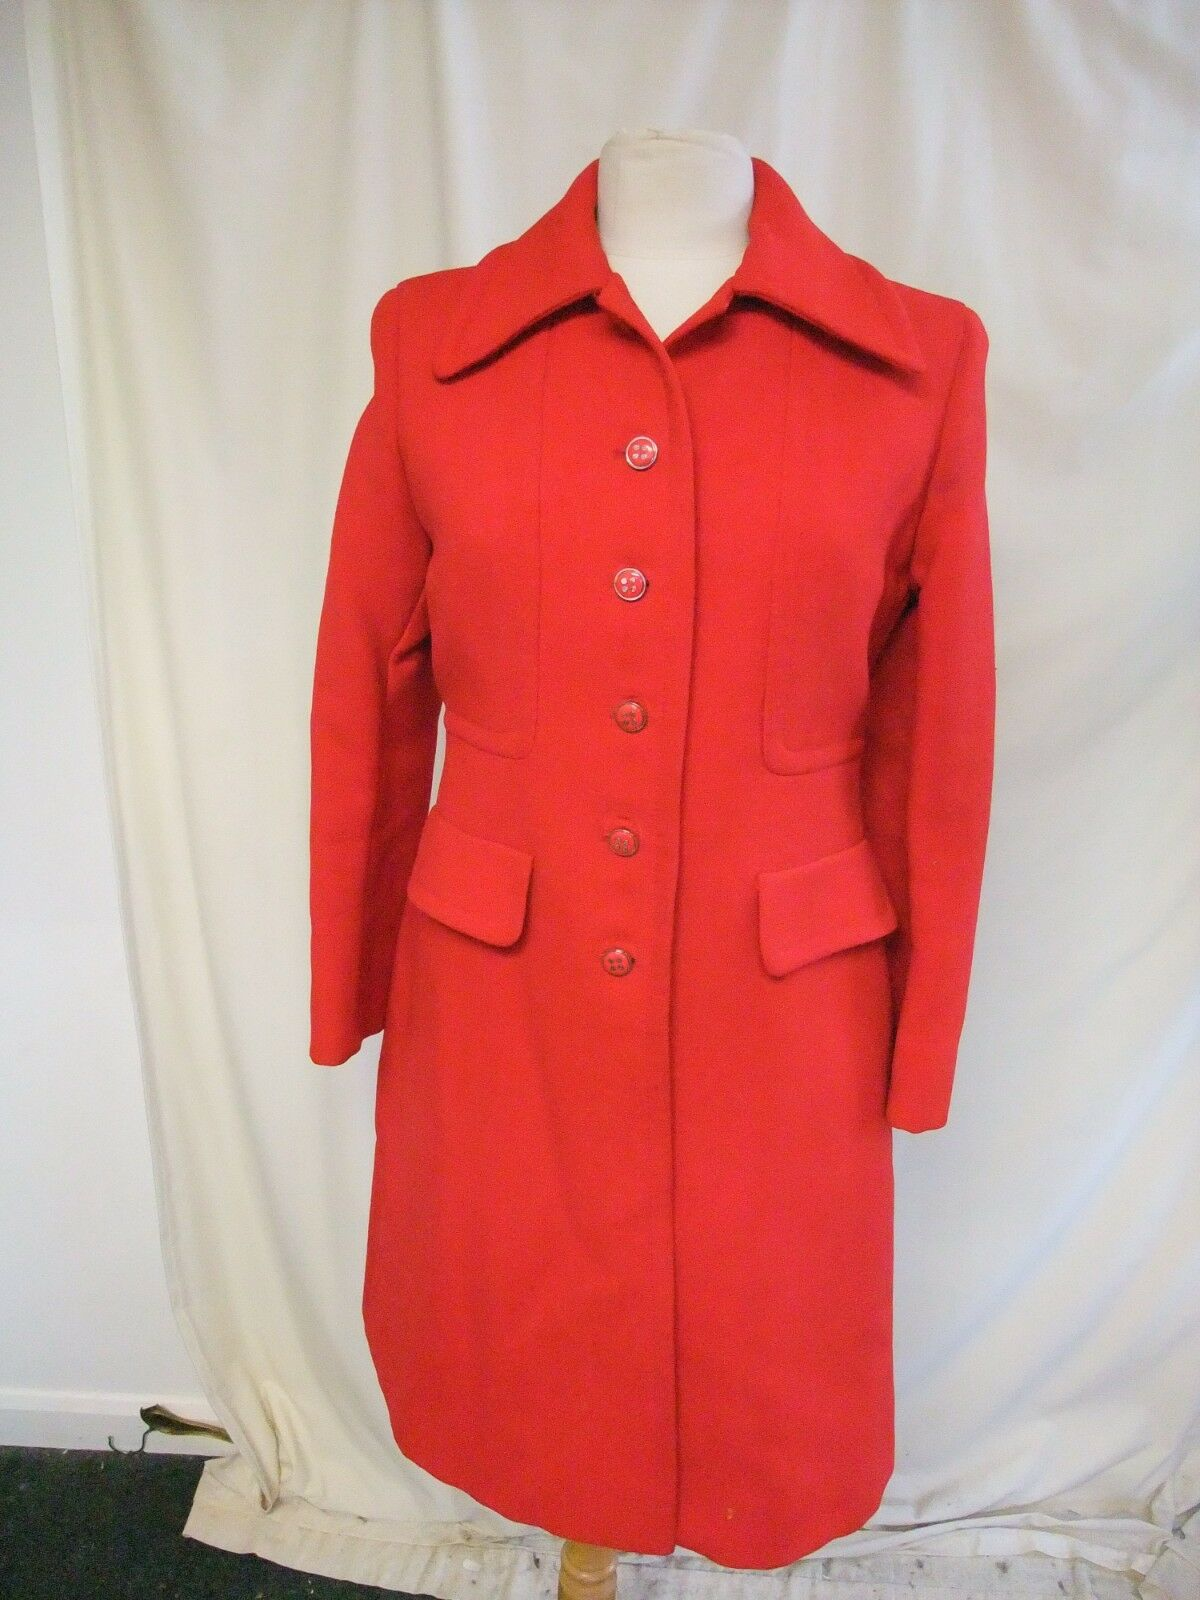 Ladies Coat Vintage Jaeger bright red red red pure wool, fitted, 1960s-70s 2394 917993